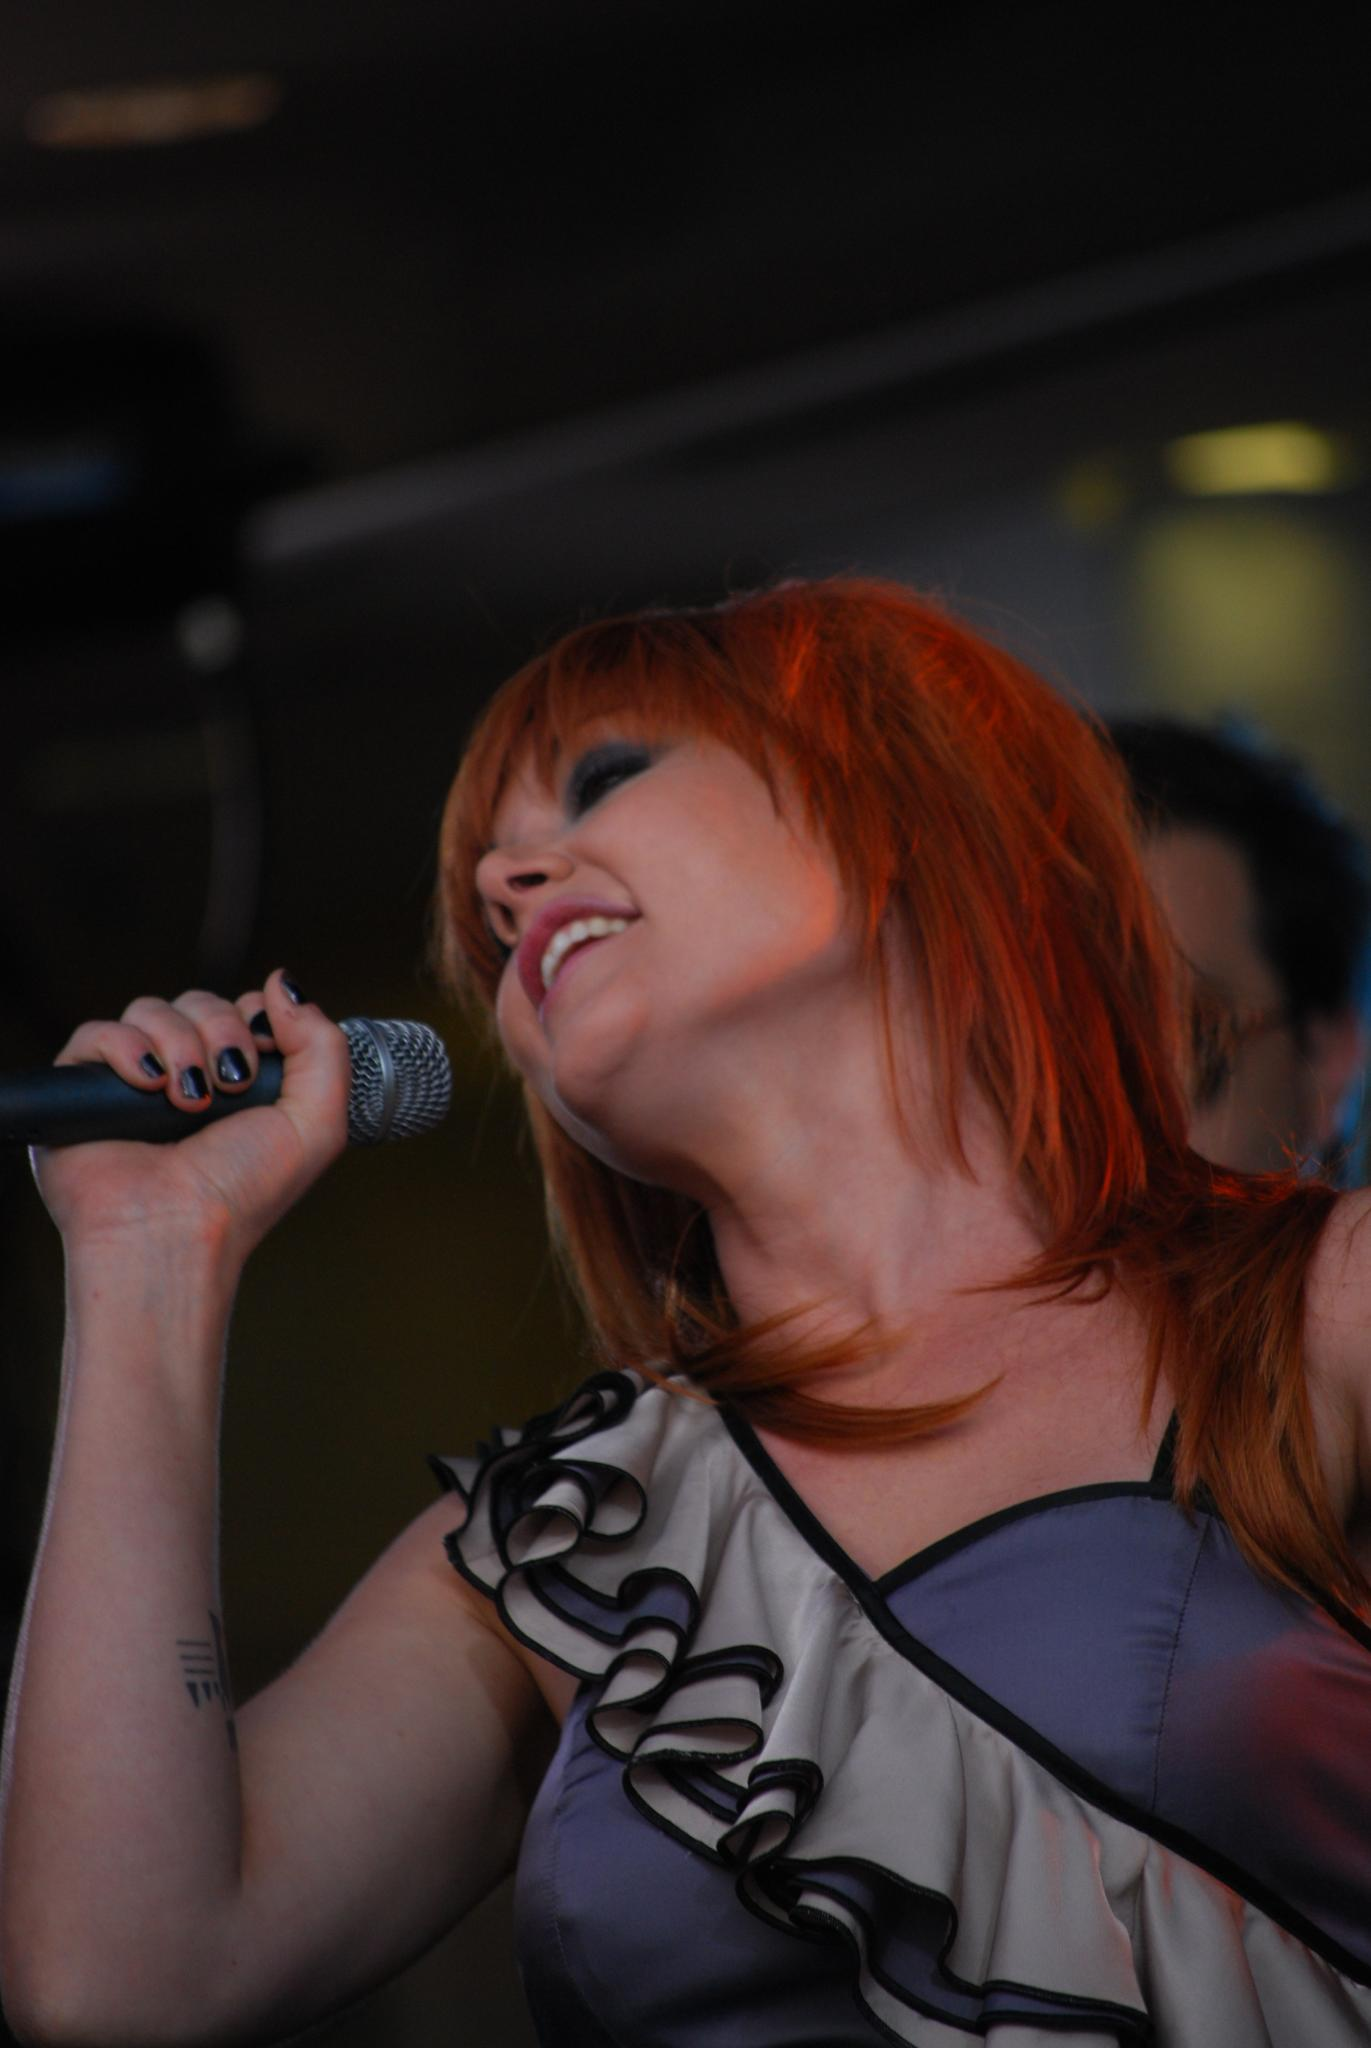 Tilt - Vanessa Amorosi - Ch9 Today Show, Bourke Street Mall - Flickr - avlxyz.jpg Vanessa Amorosi singing her first number 1 single This is